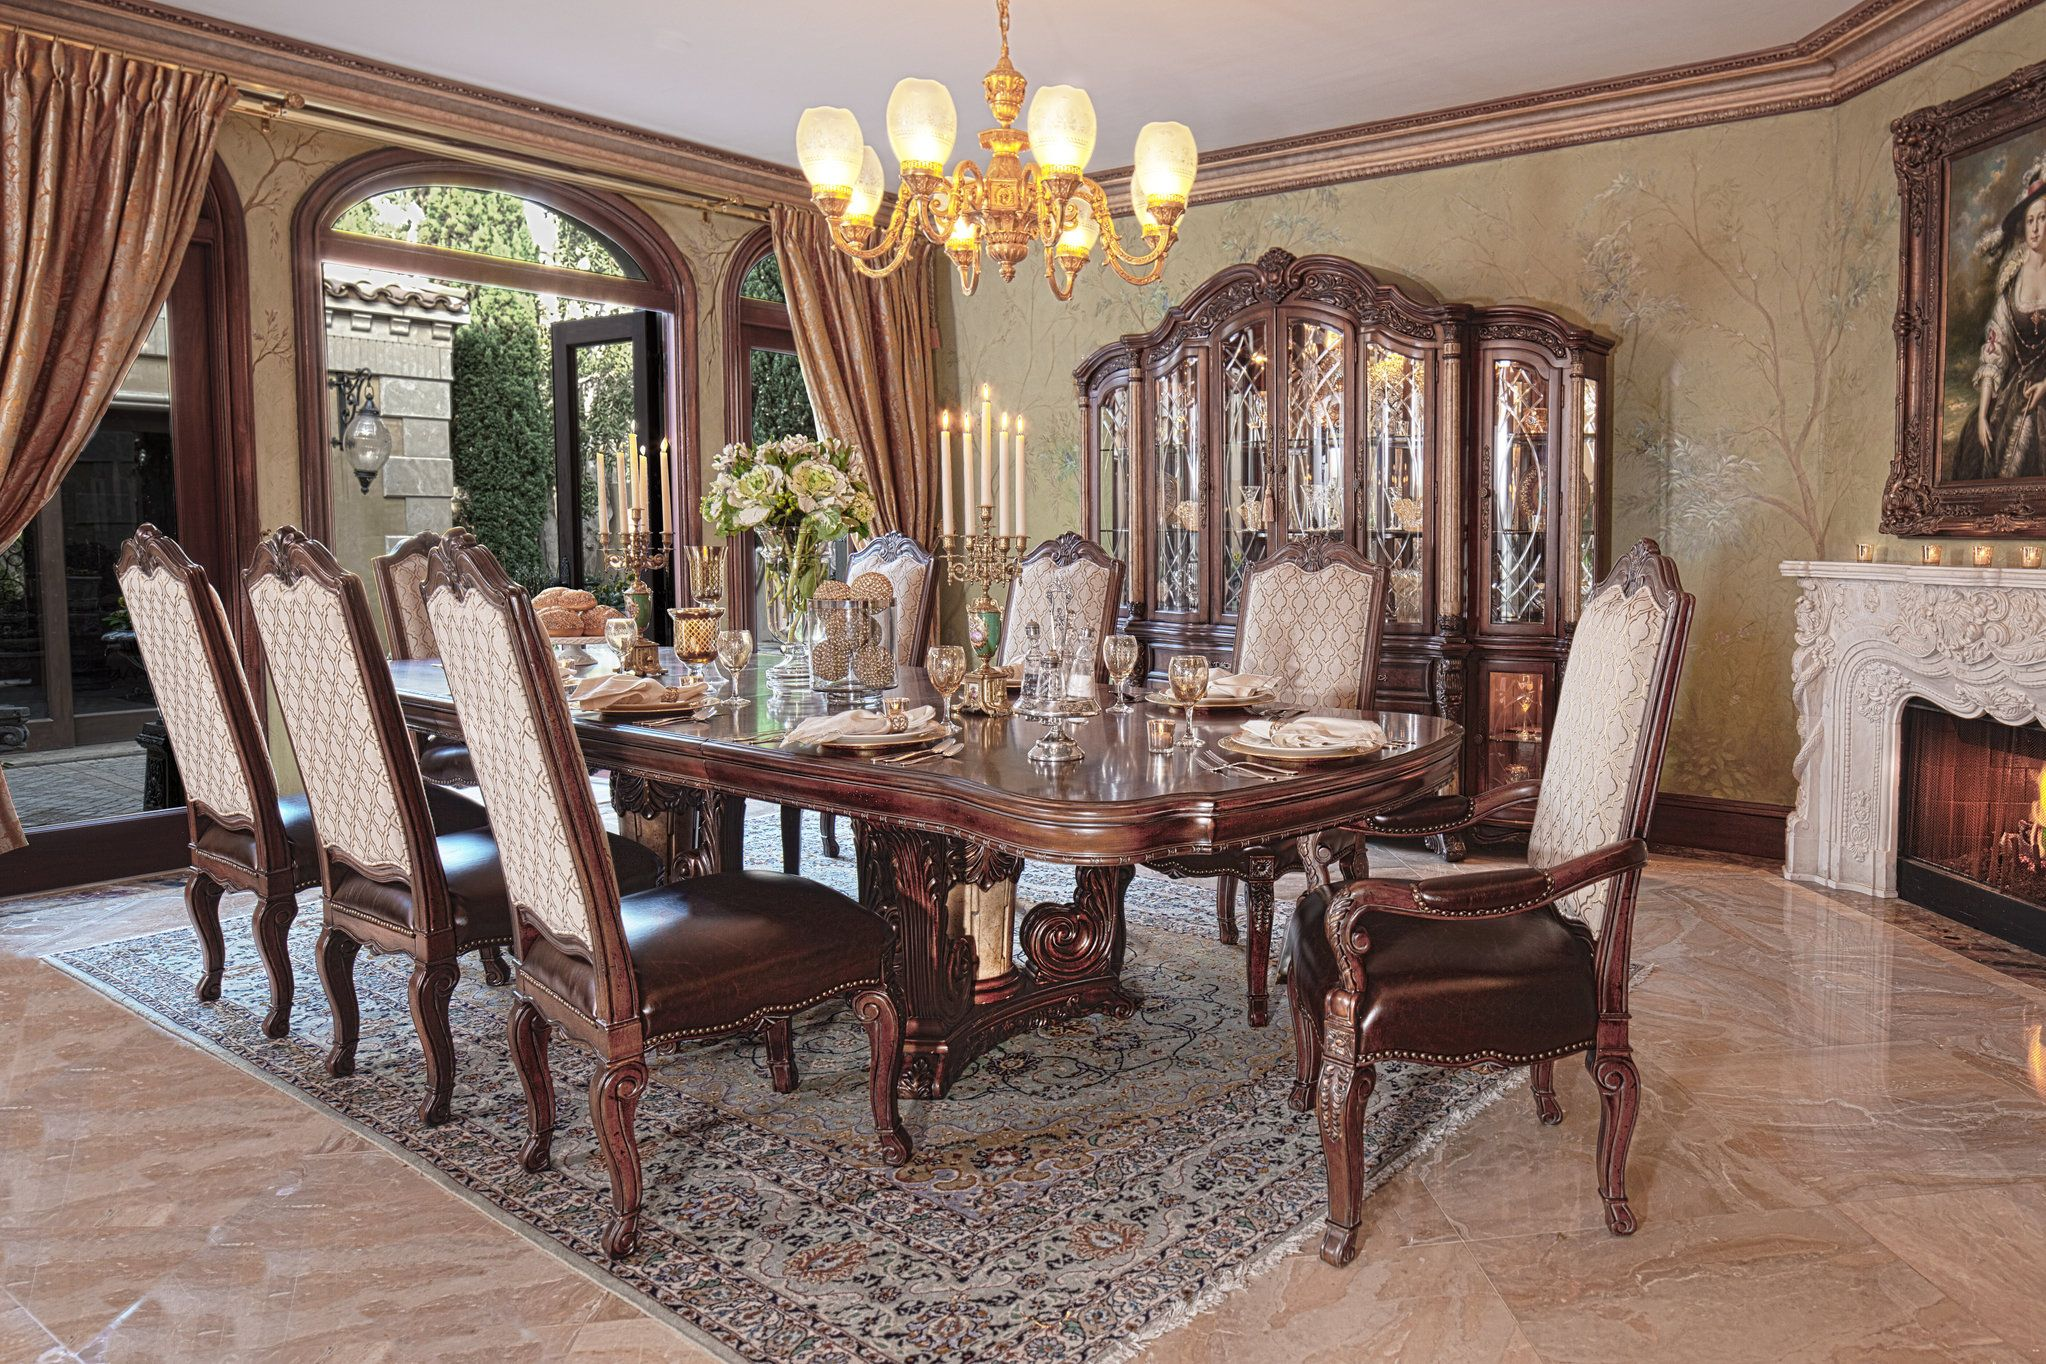 The Victoria Palace Formal Dining Room Collection 12704  Glass Inspiration Formal Dining Room Collections 2018